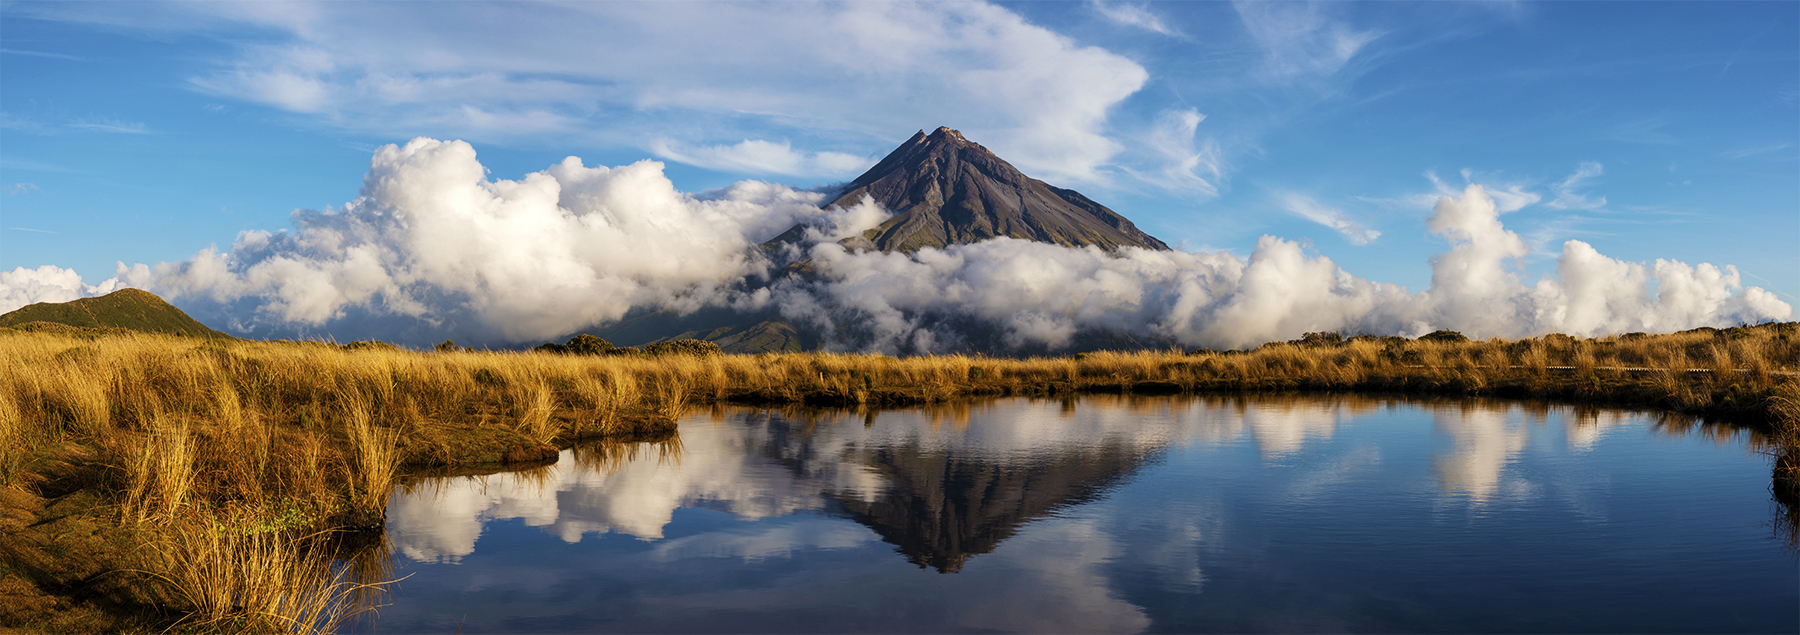 Mt Taranaki, New Zealand. A Limited Edition Fine Art Landscape Photograph by Richard Hume